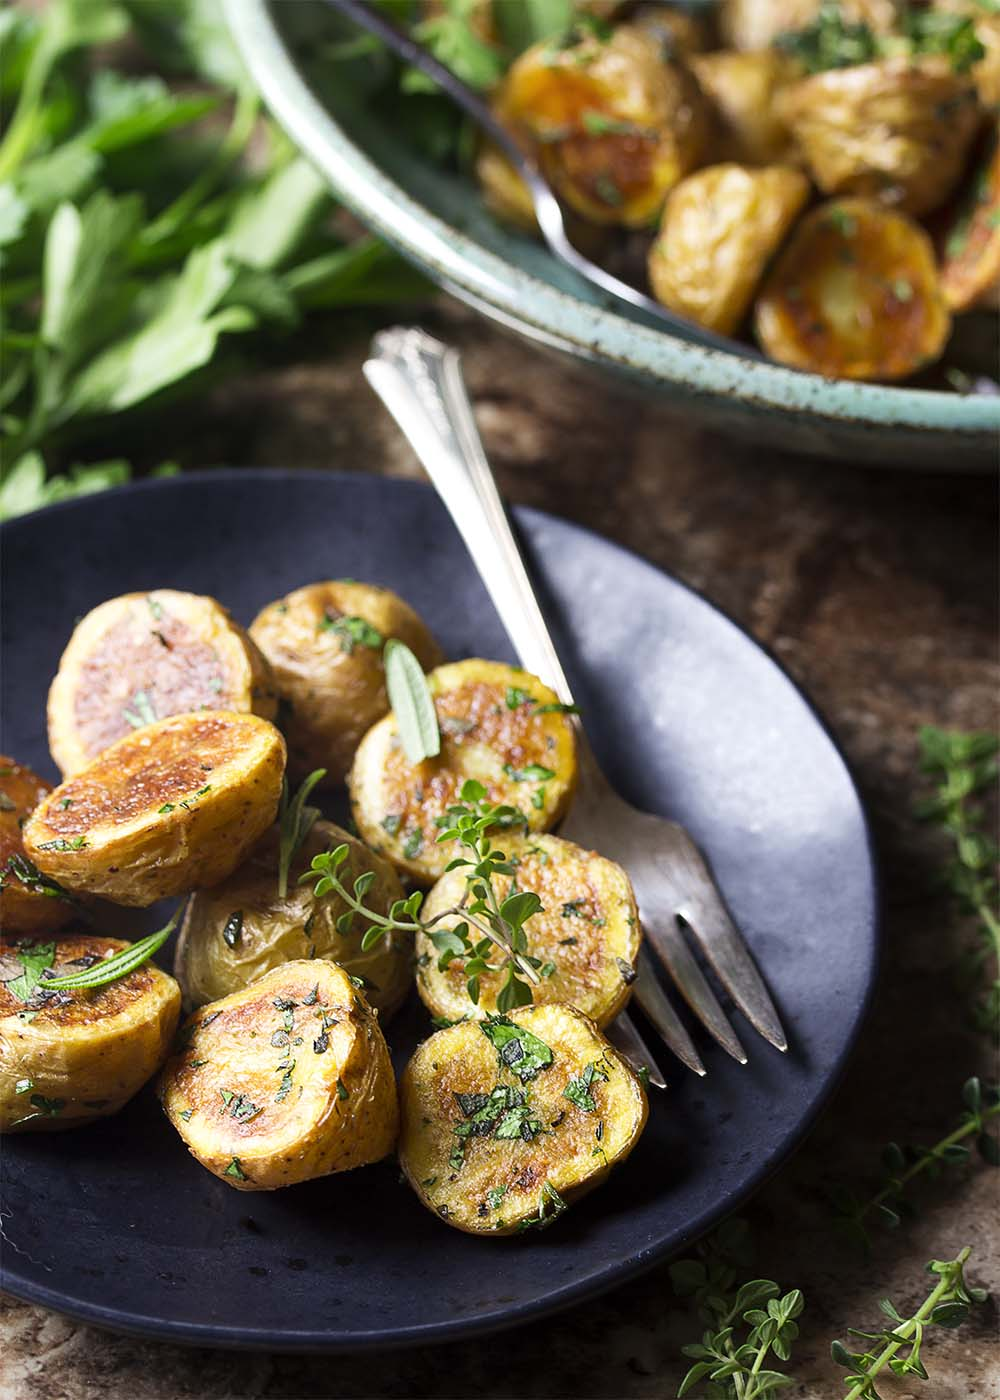 Deep golden brown crispy herbed potatoes on a plate with a fork.